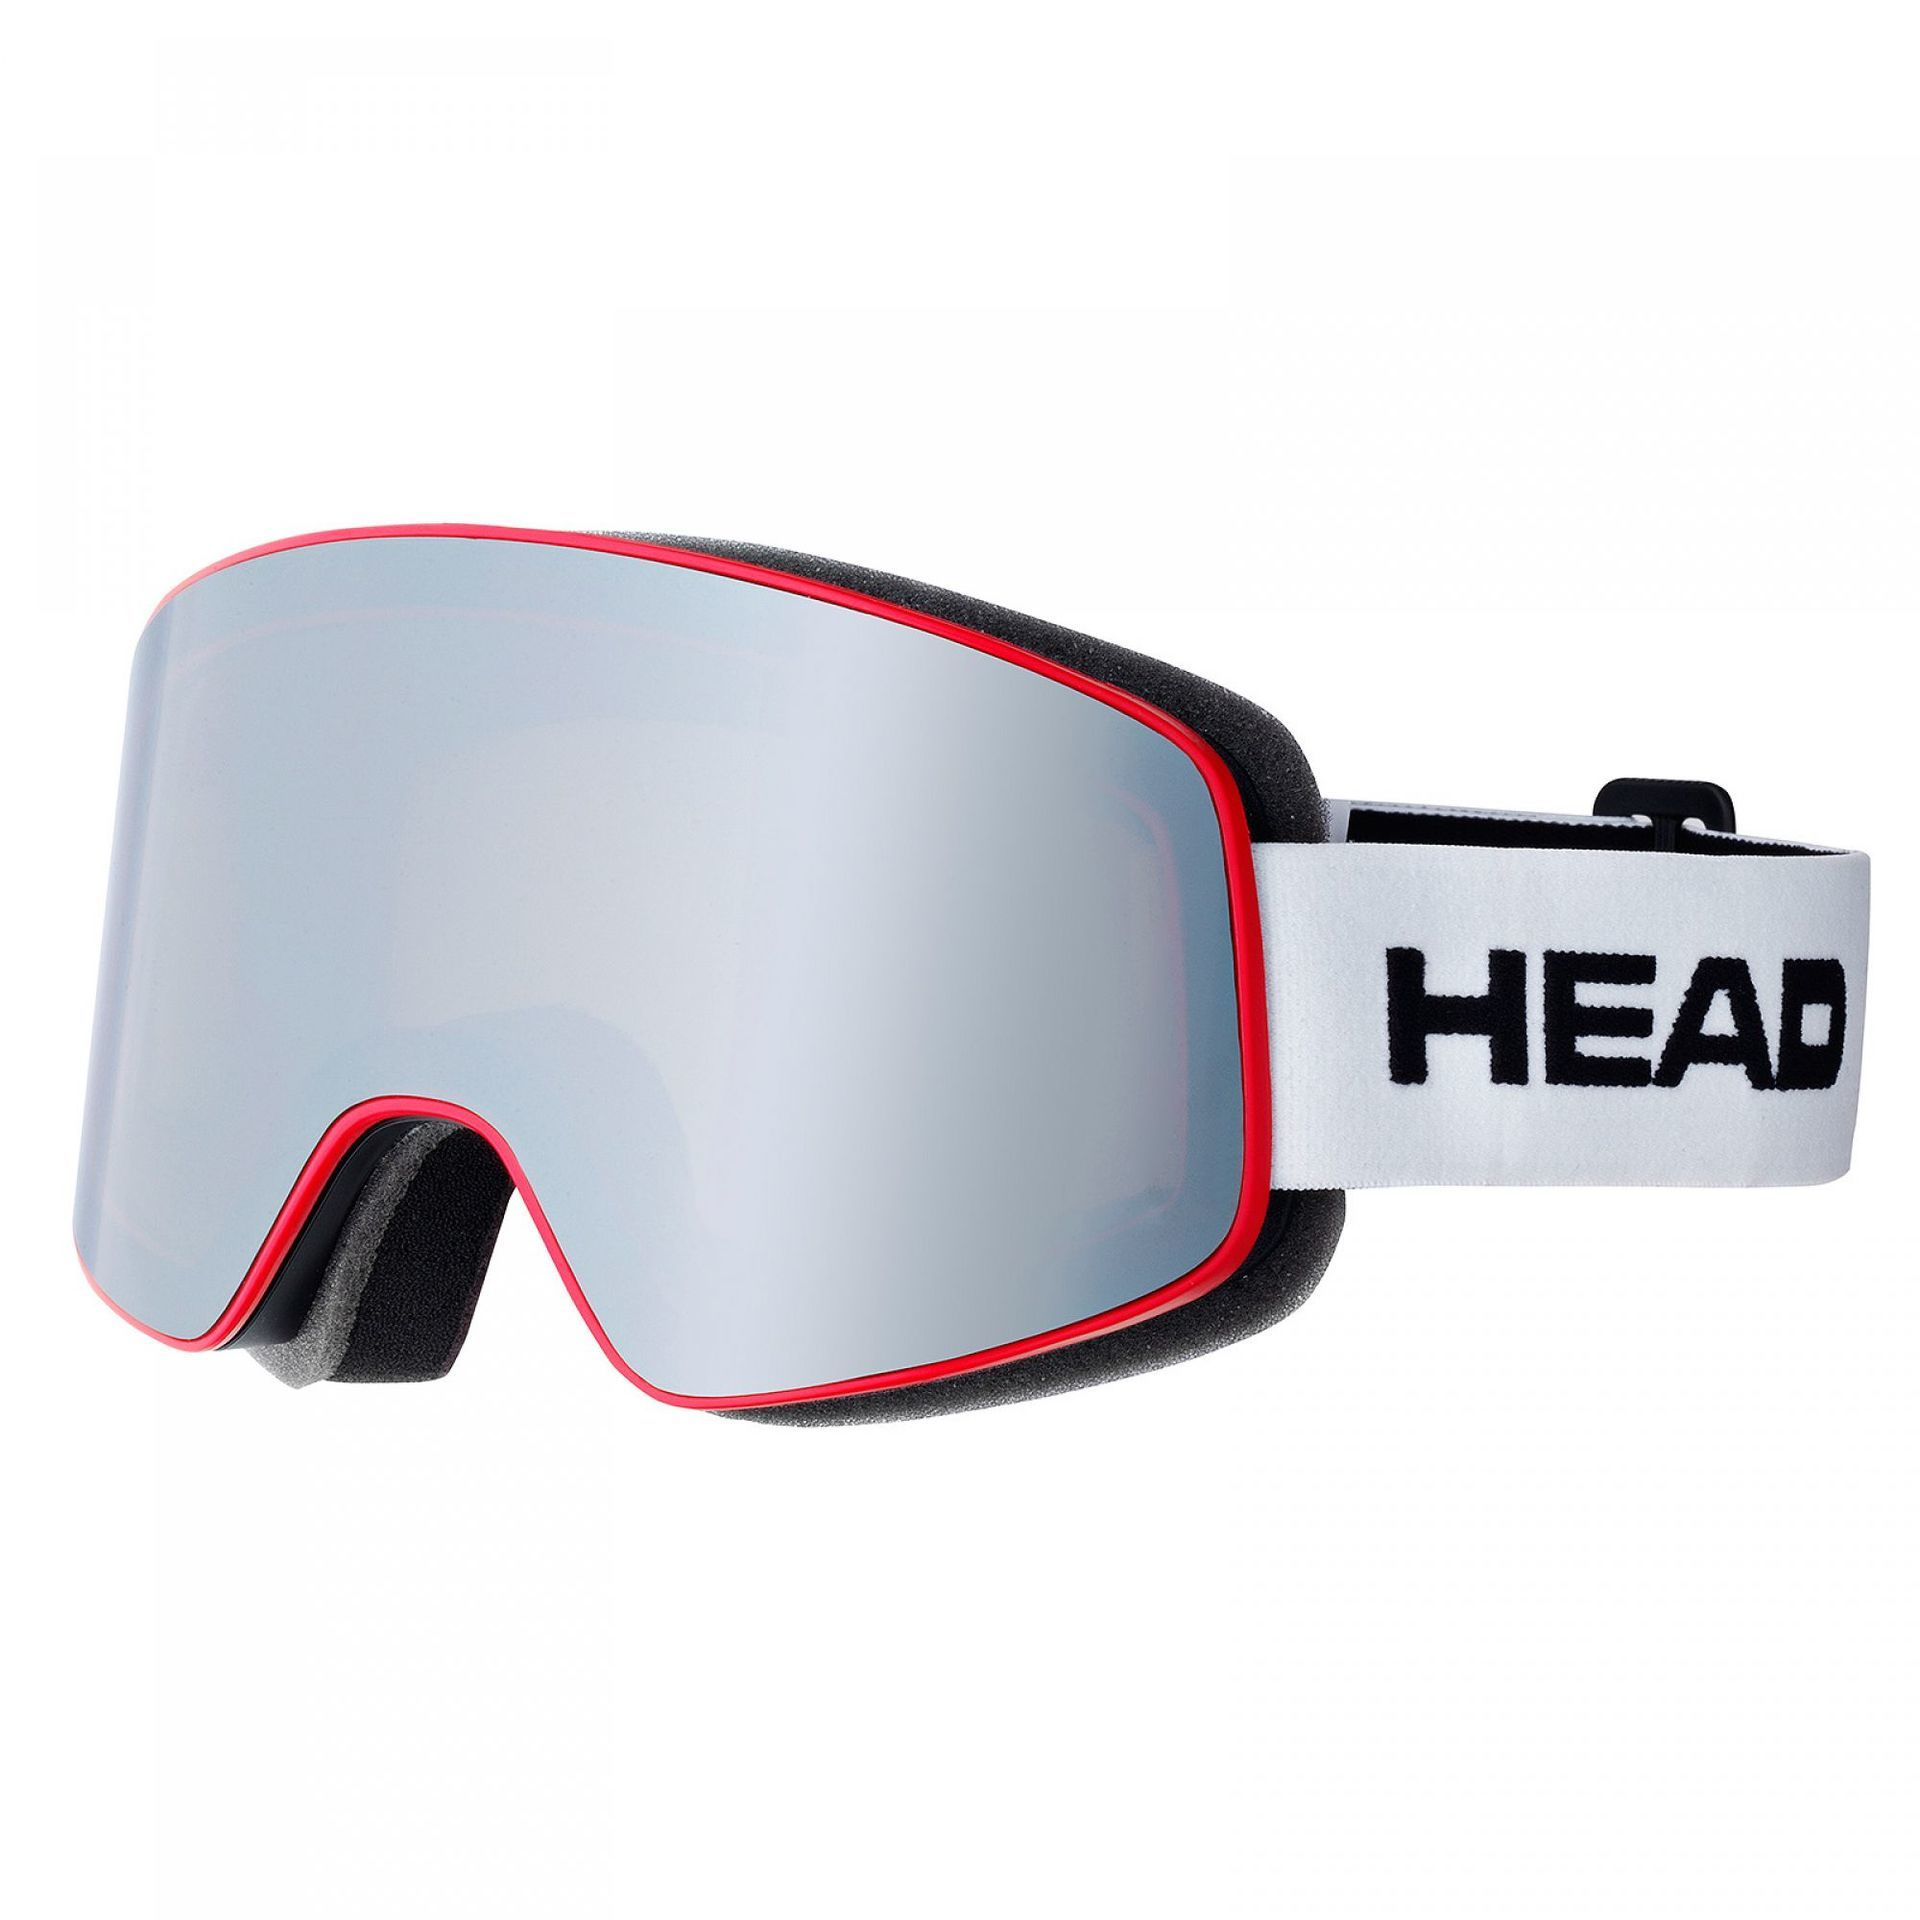 GOGLE HEAD HORIZON FMR WHITE RED